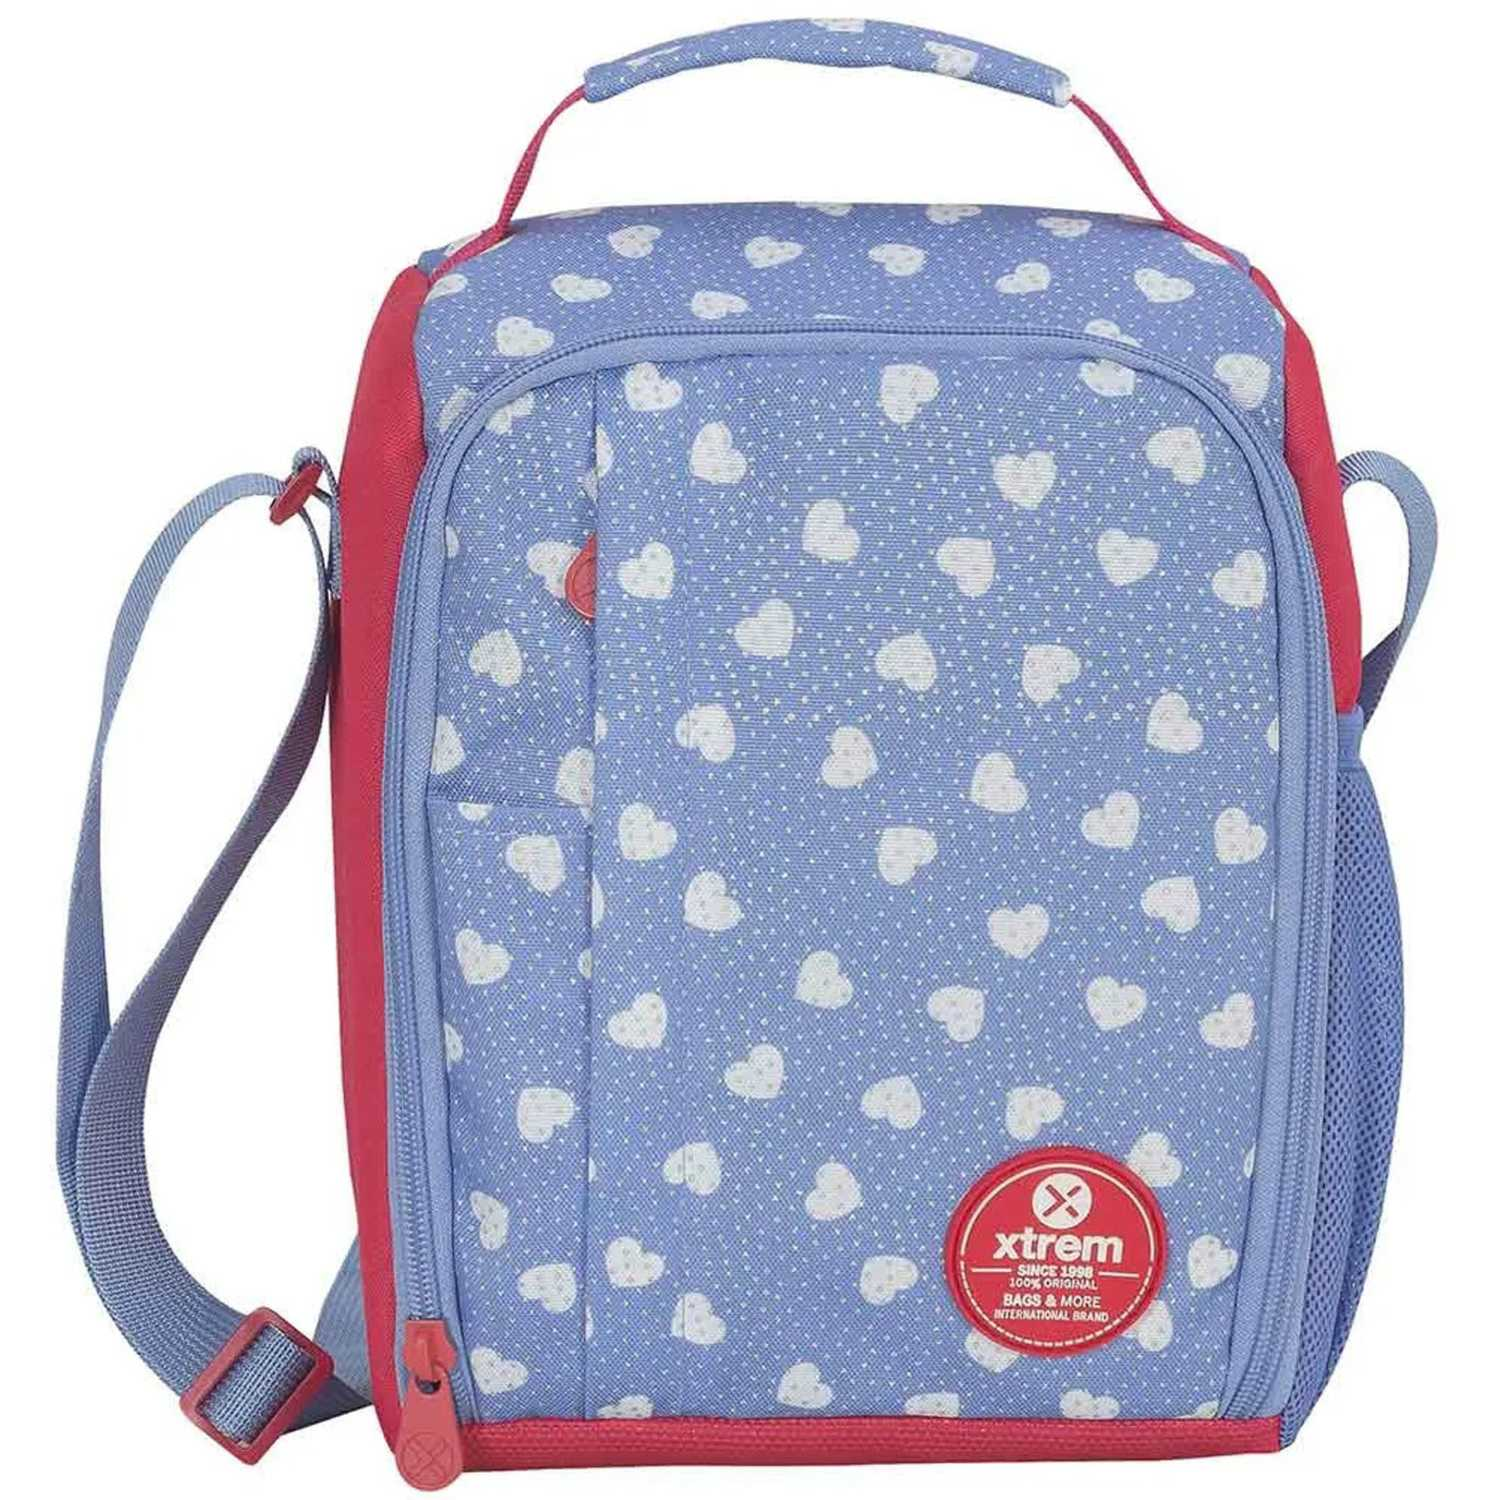 Loncheras de Niña Xtrem Rojo / celeste lunch bag sweethearts lunch 844